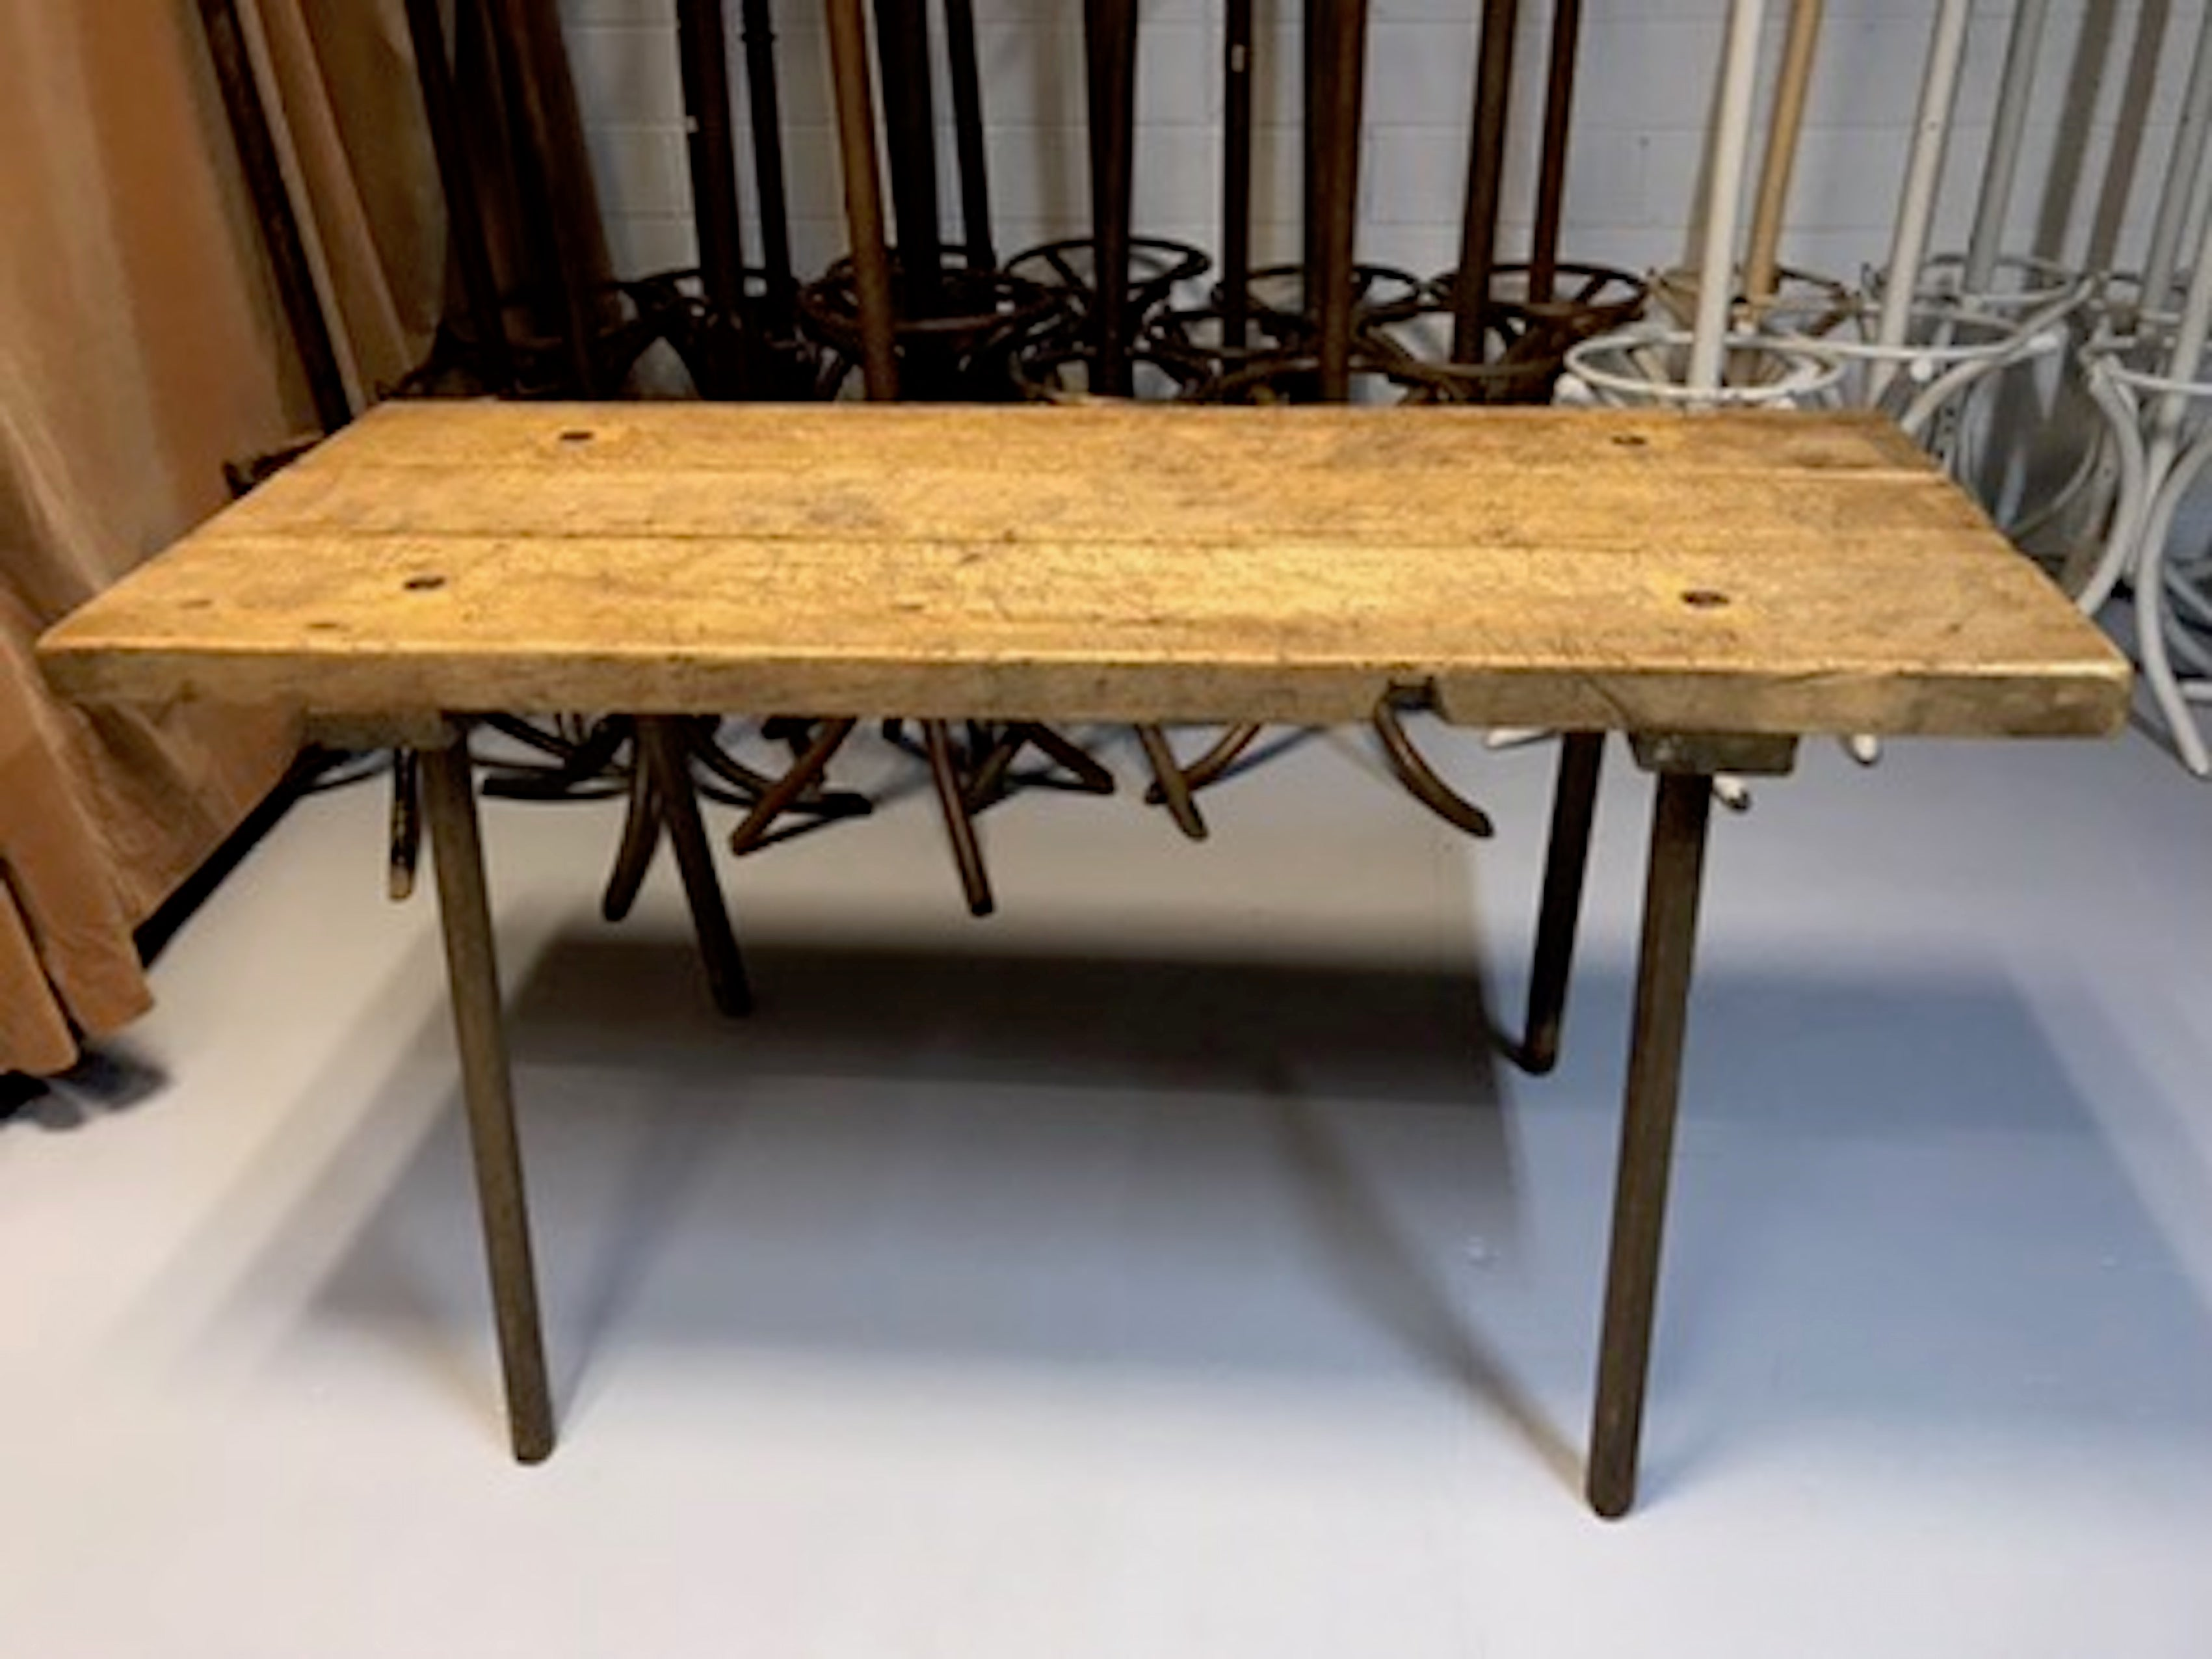 Vintage industrial European wooden hallway table console #1967